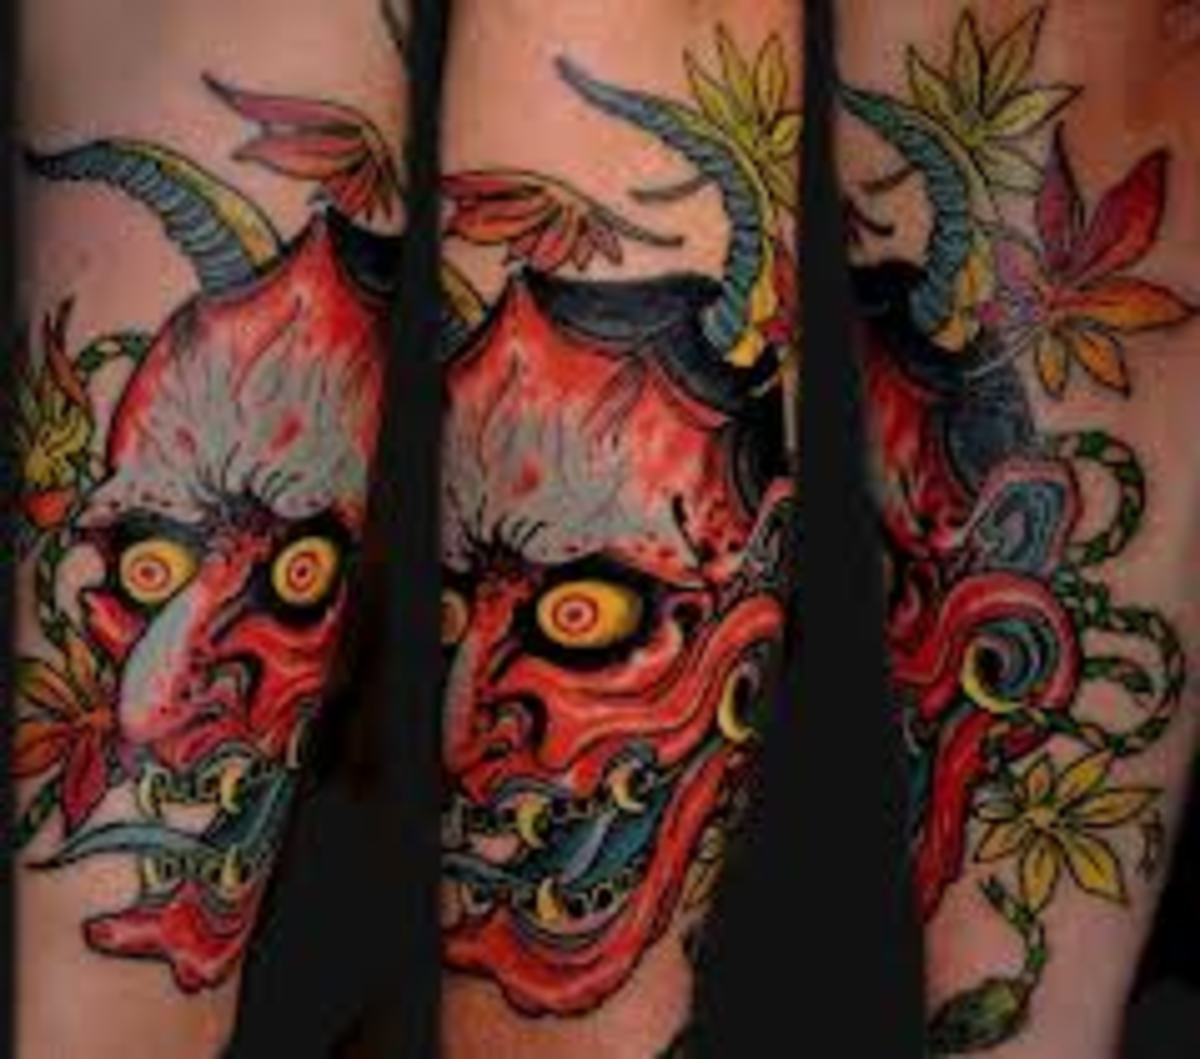 A vibrant red hannya mask tattoo.